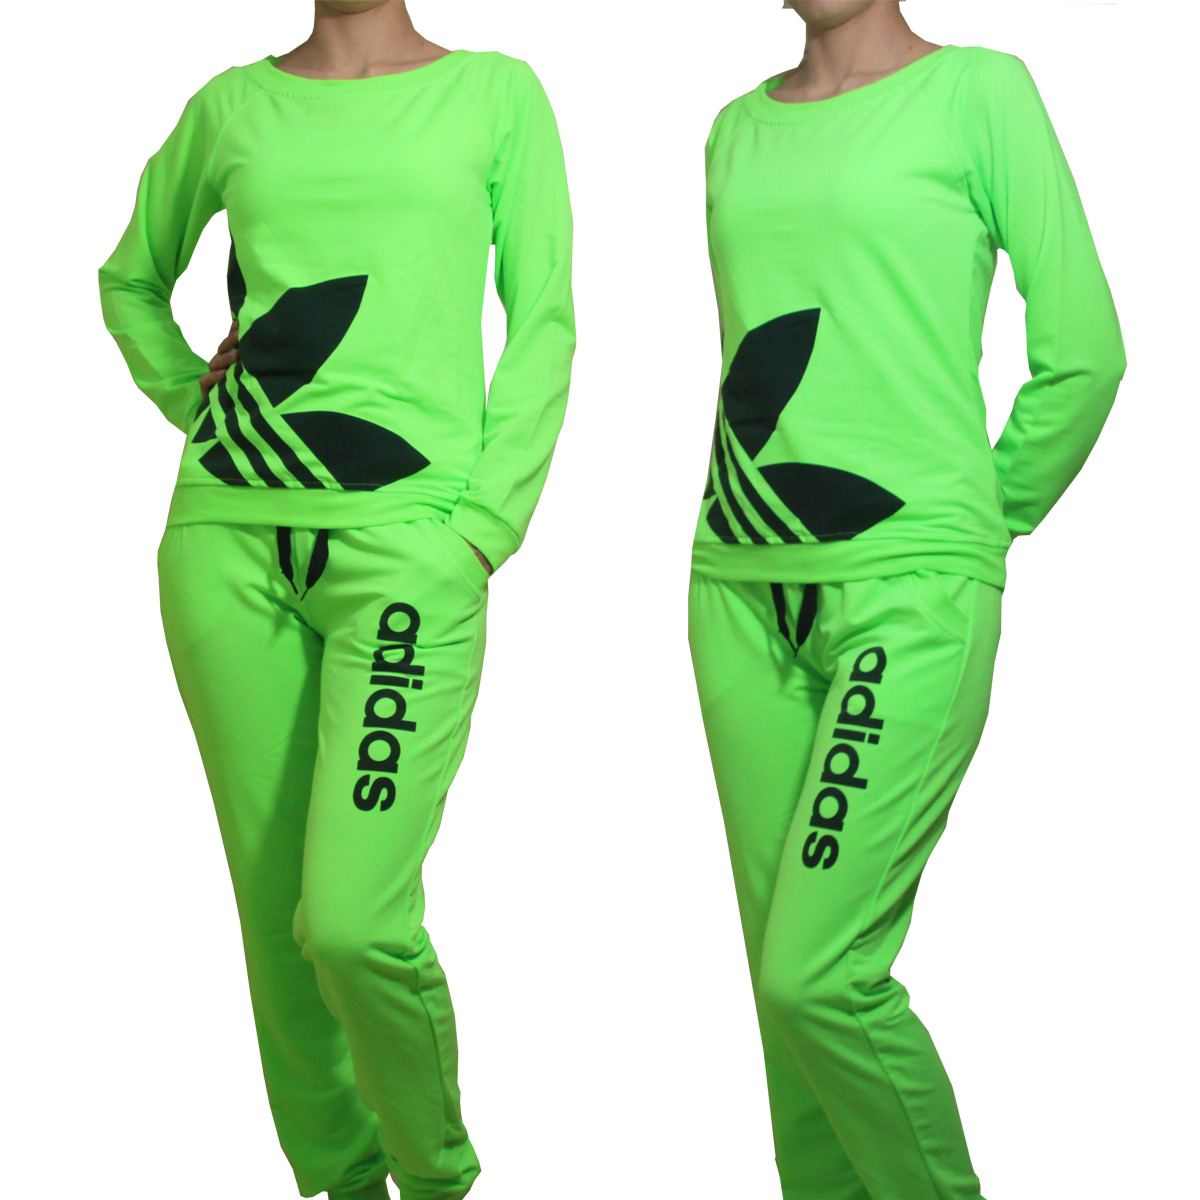 Adidas Neon Women Tracksuit Sweatsuit Track Pants Tops green - Athletic Apparel